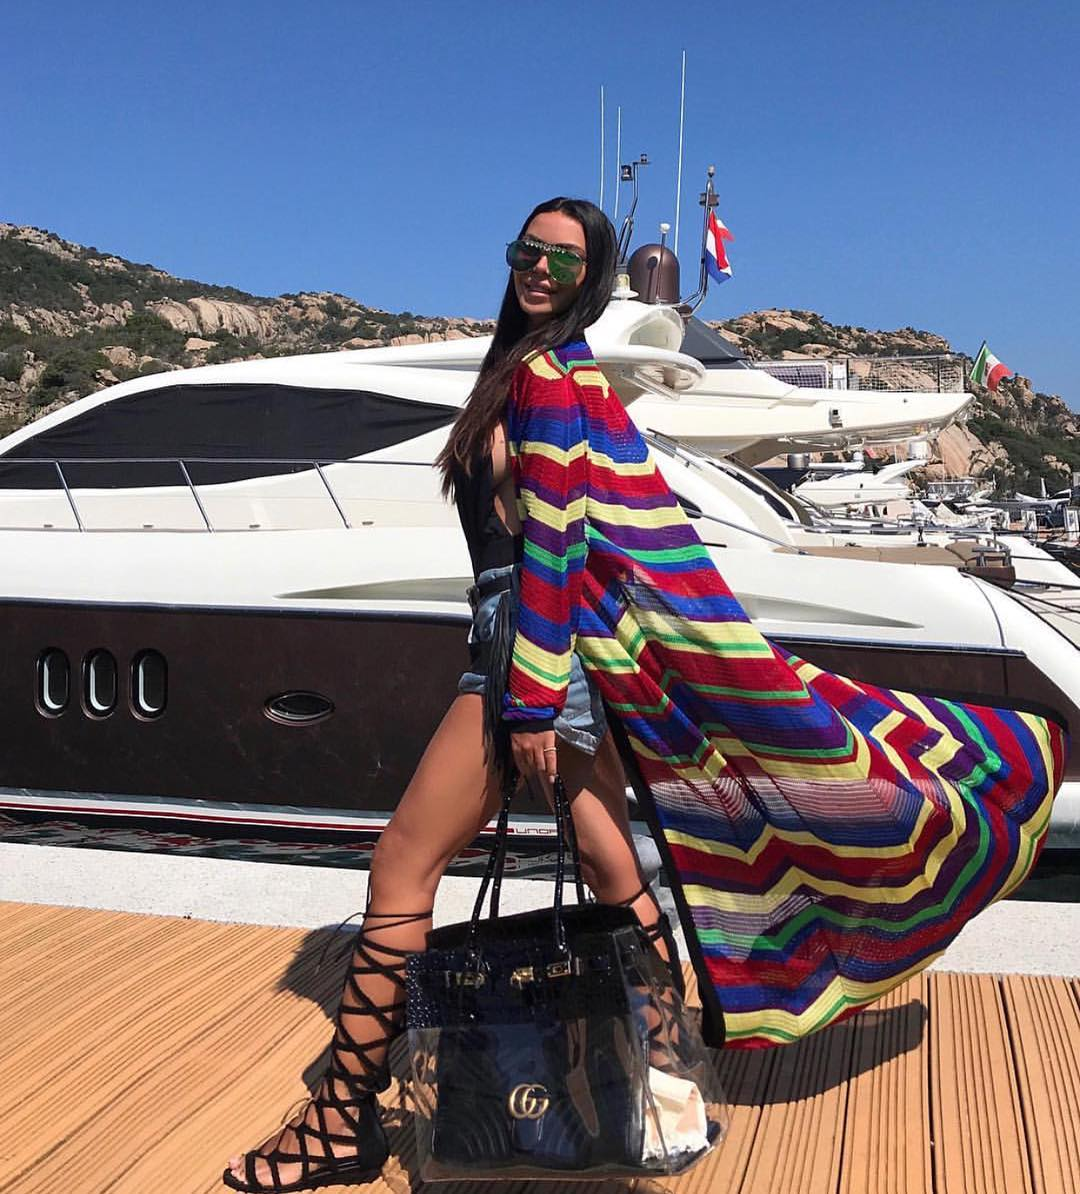 Multi Chevron Sheer Robe Coat For Summer Boat Trip 2019